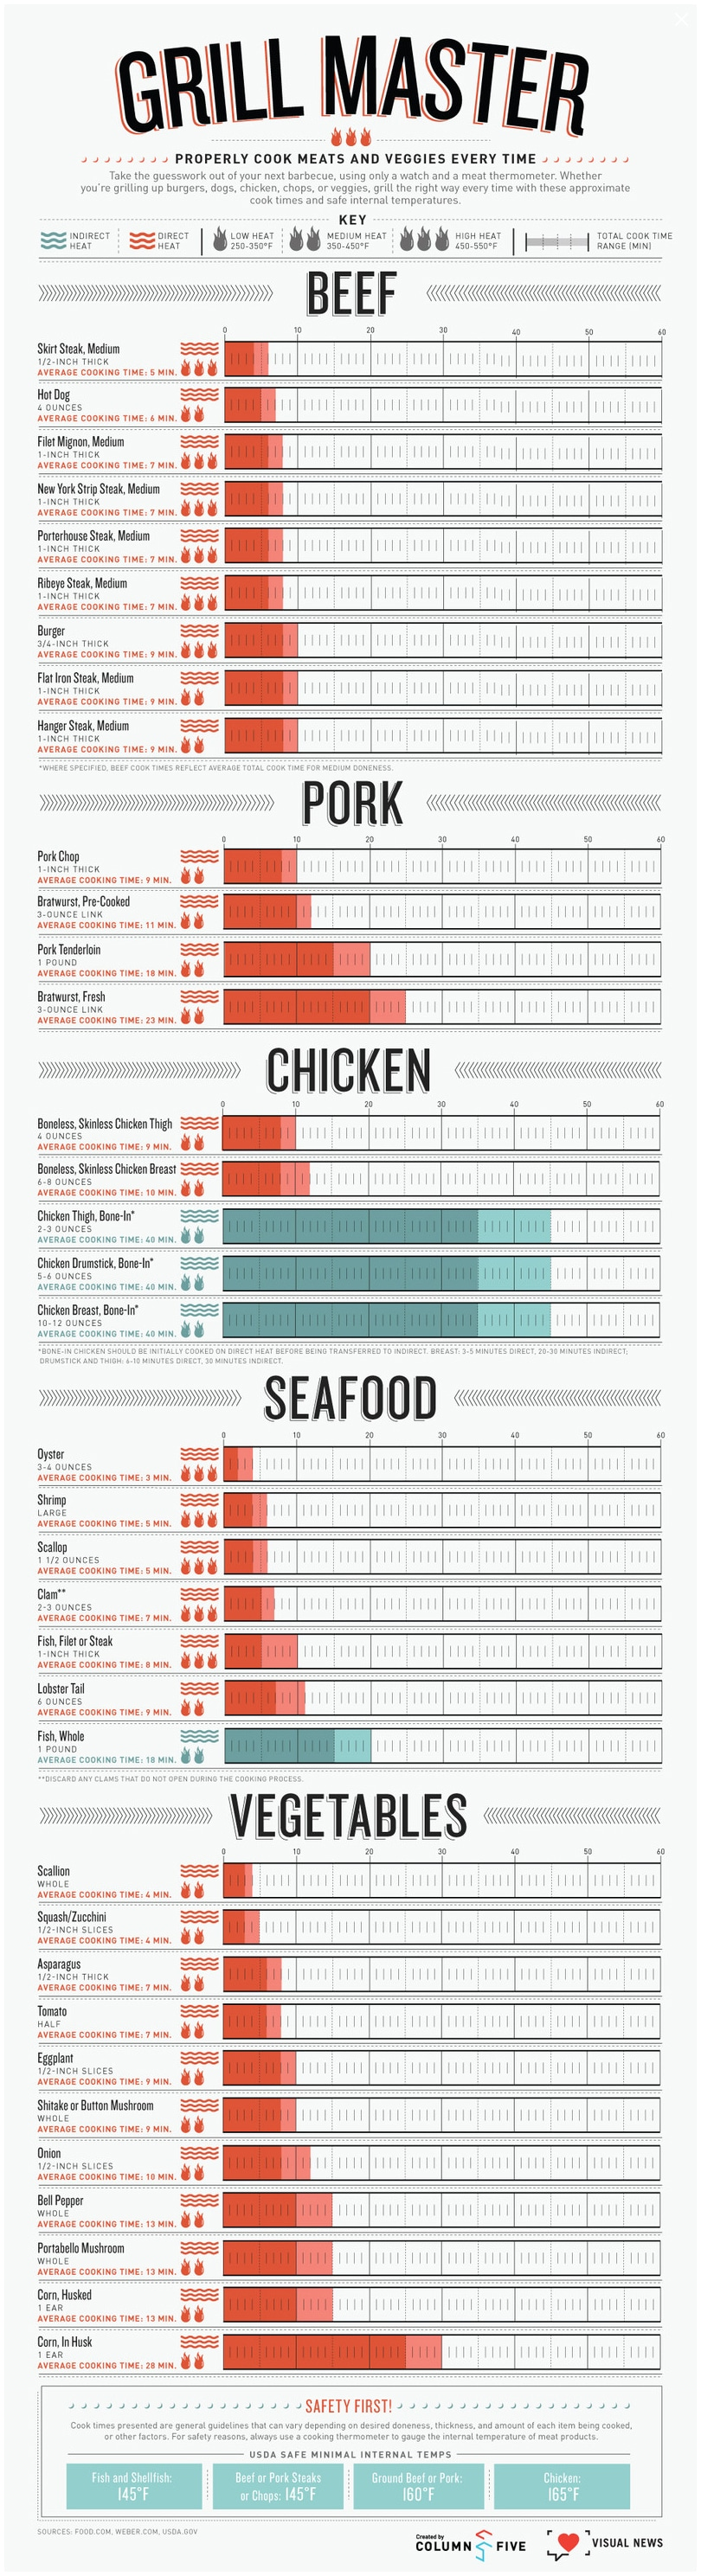 grill-master-cheat-sheet-infographic